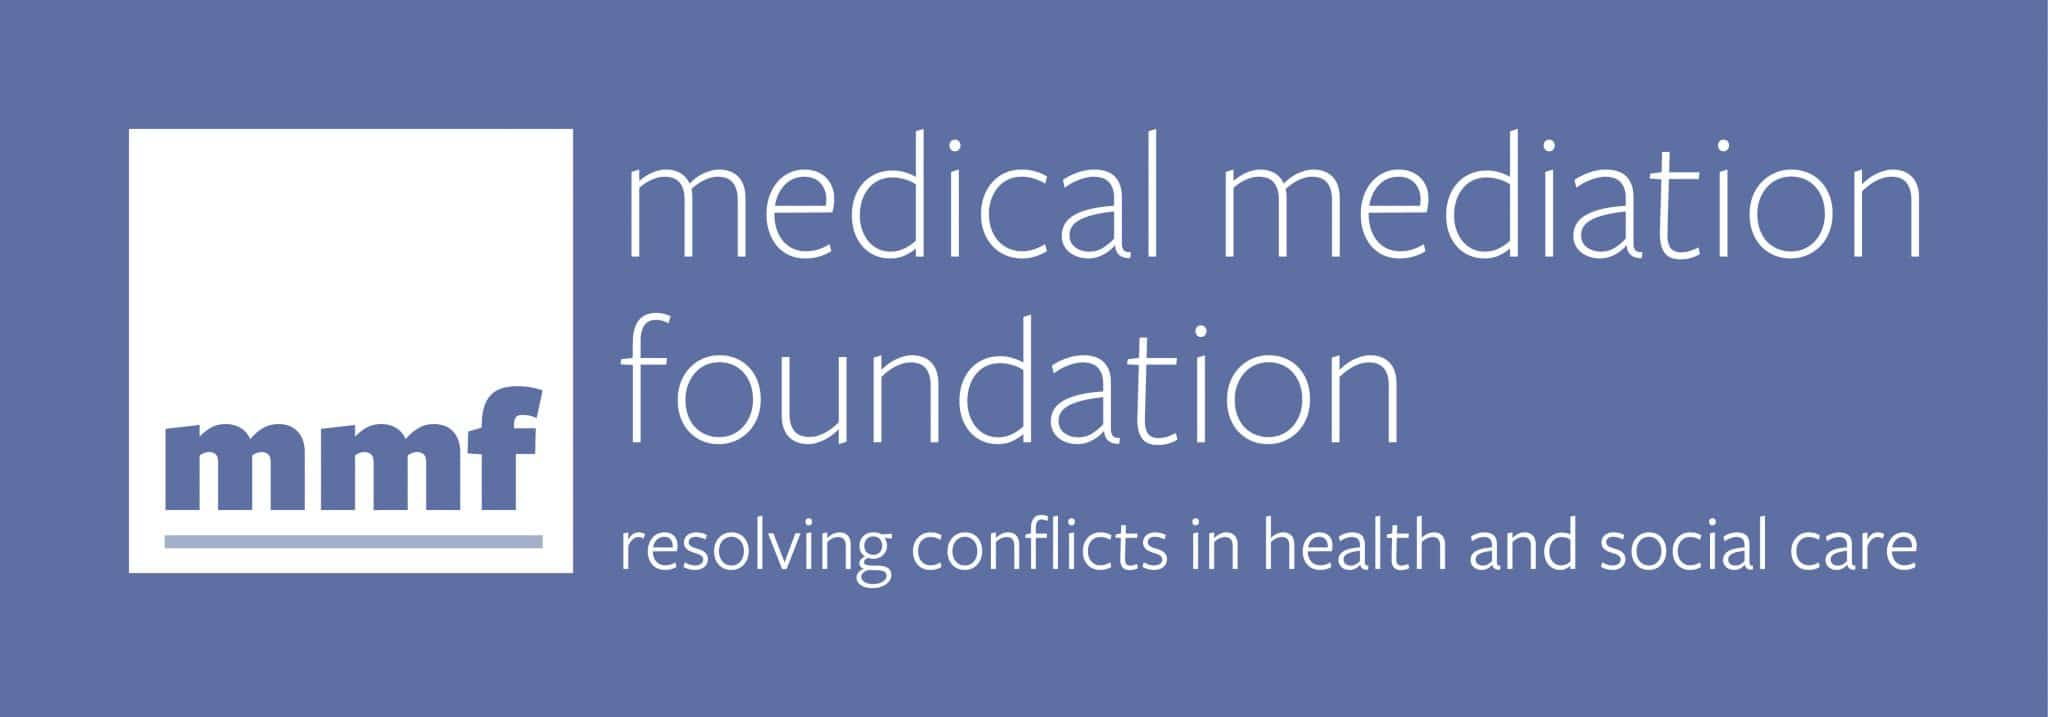 Medical Mediation Foundation logo